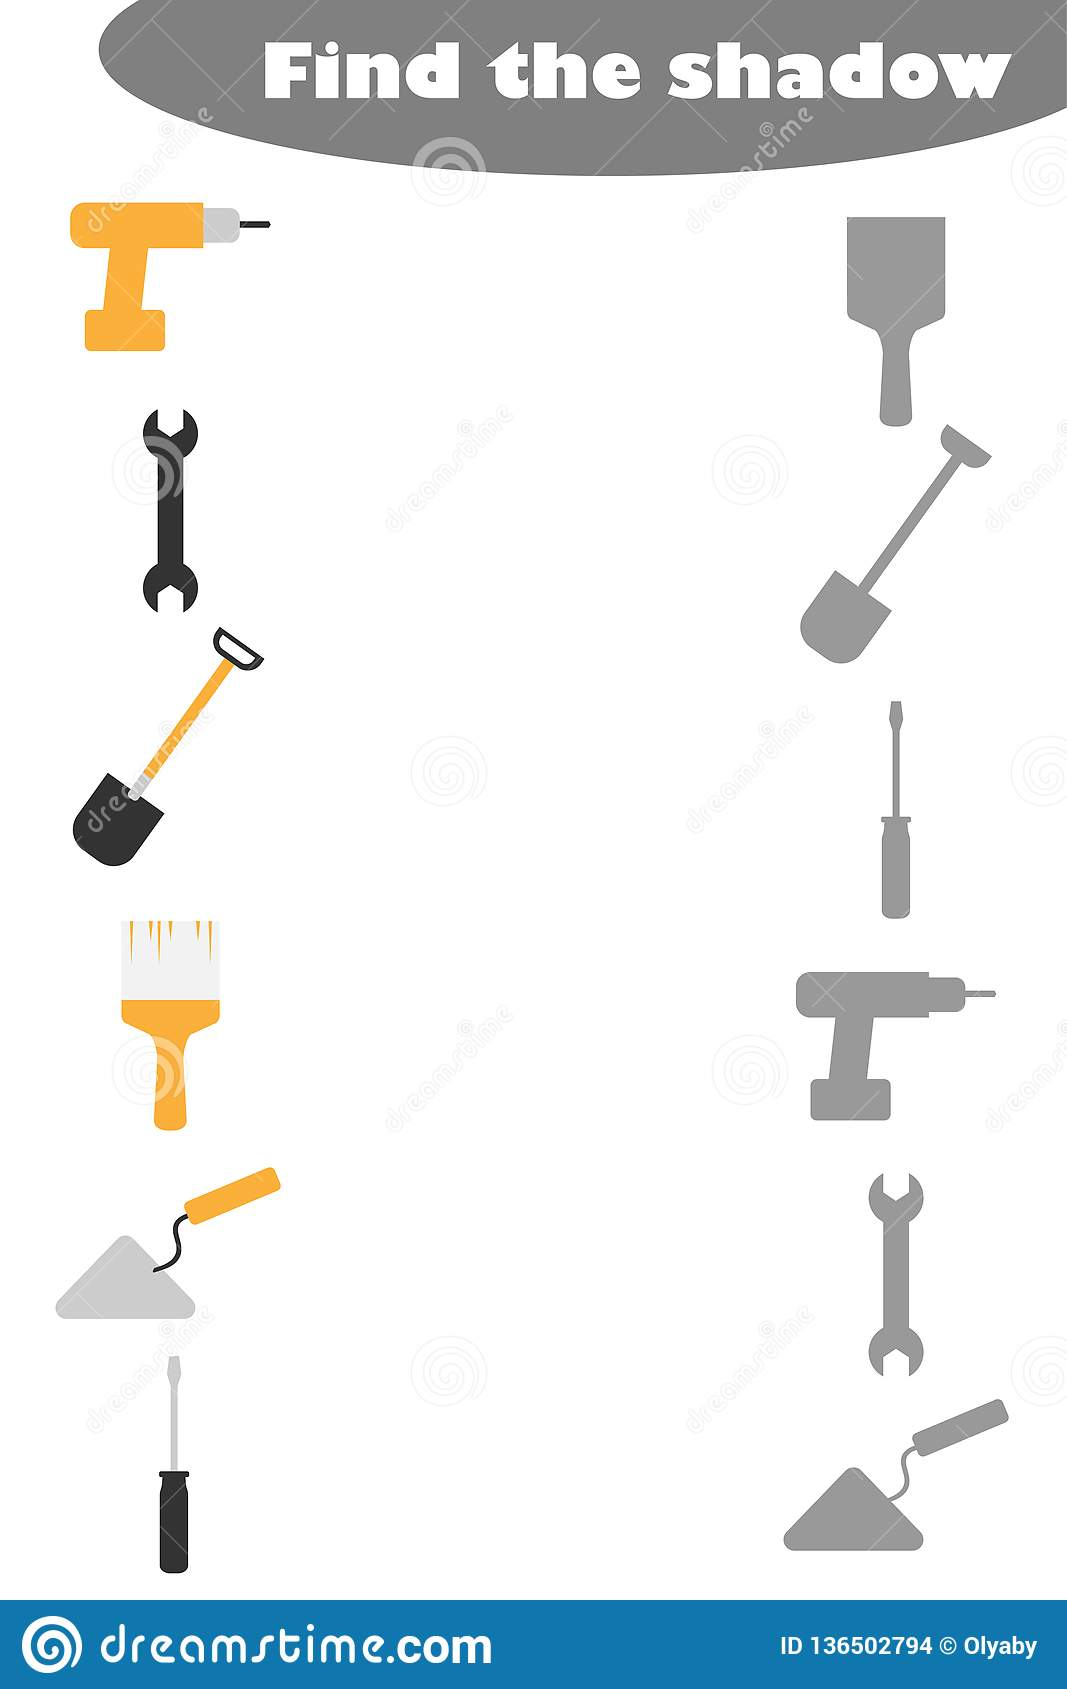 Find The Shadow Game With Construction Pictures For